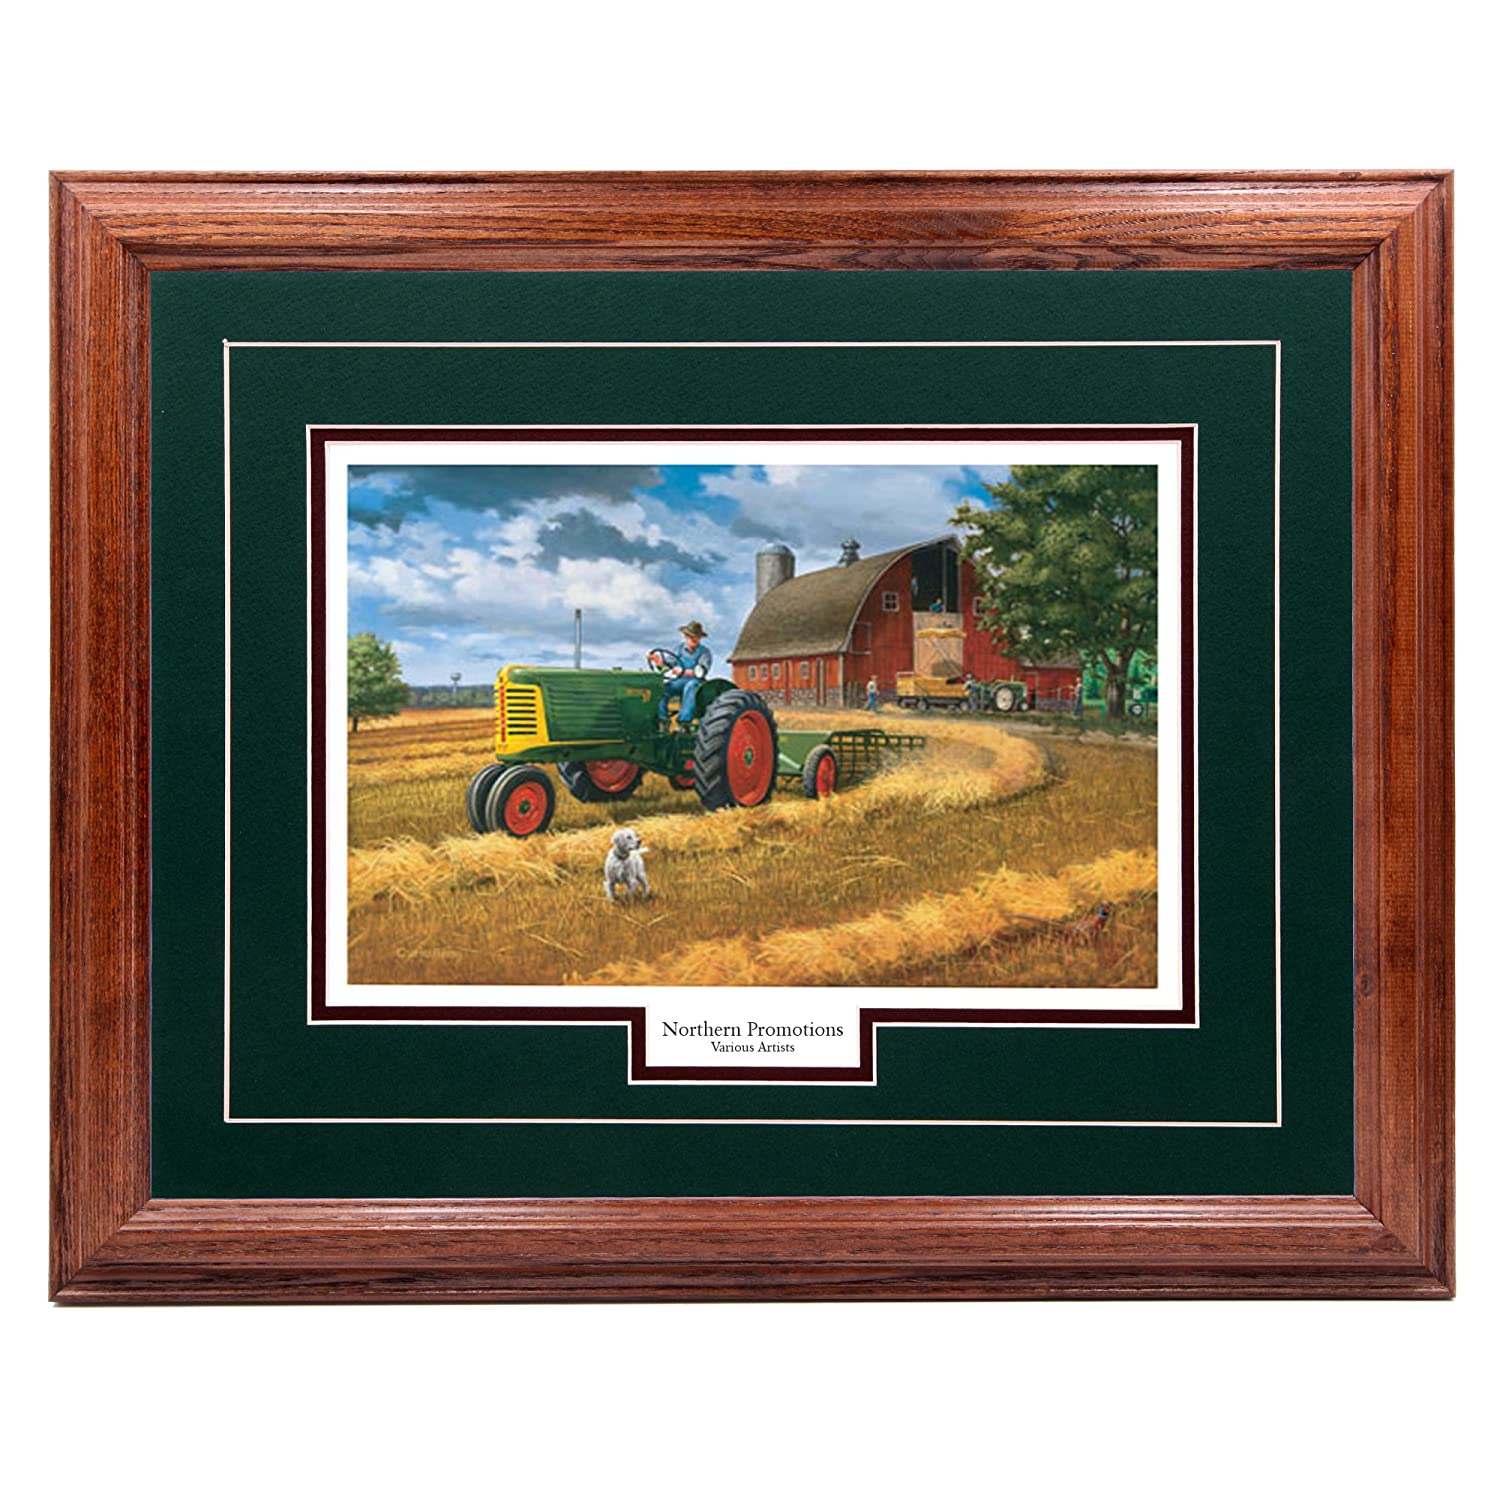 Amazon oliver twist charles freitag john deere farm amazon oliver twist charles freitag john deere farm tractor and nature classic wall art print for home office hotel cabin gift jeuxipadfo Images